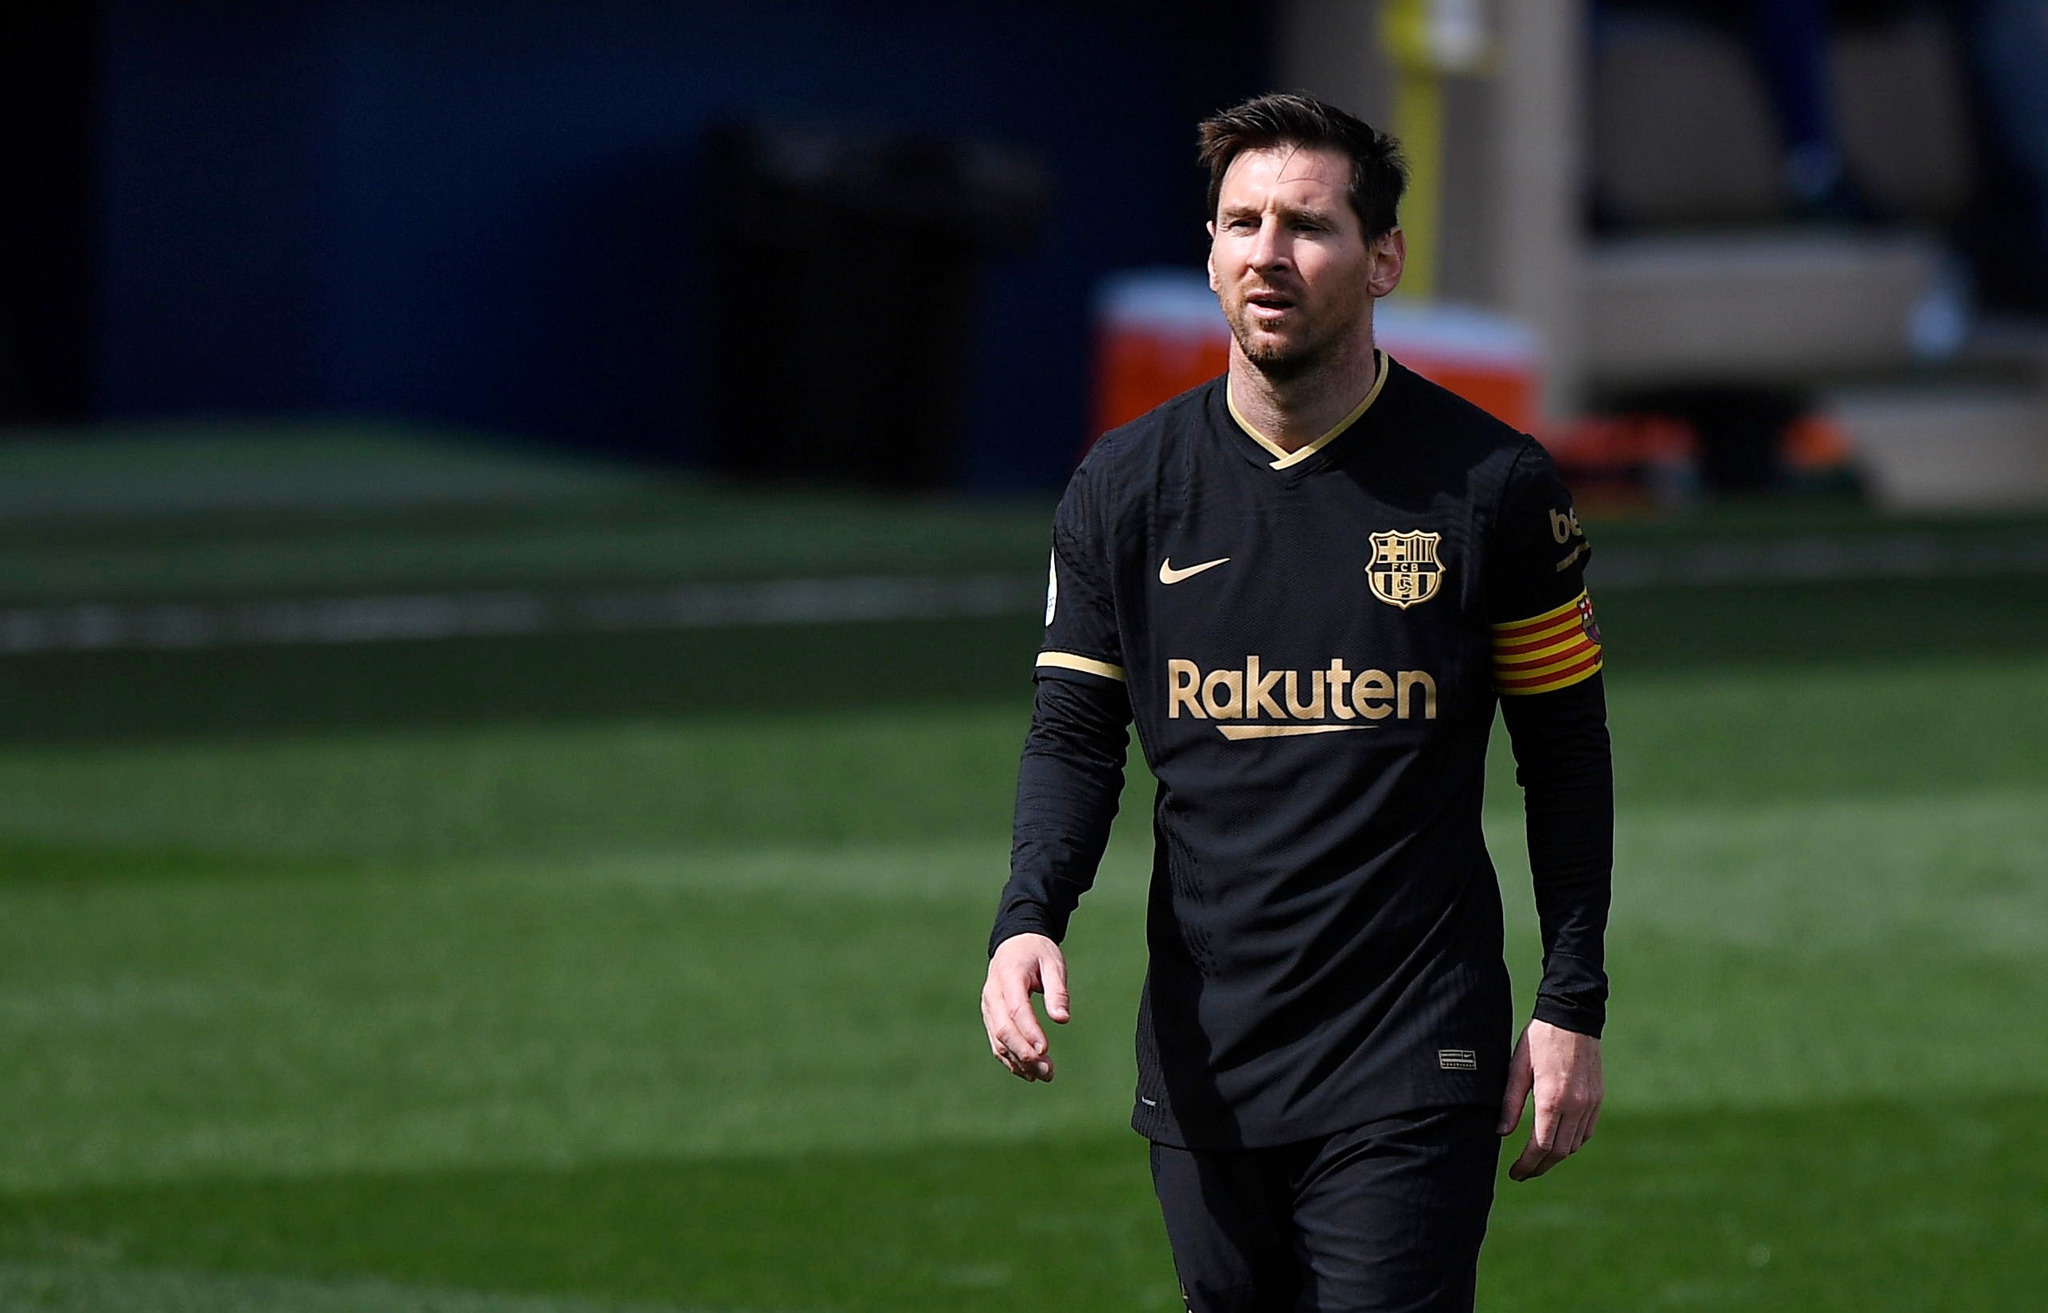 Lionel Messi's Barcelona next target the La Liga title after clinching the Copa Del Rey last weekend